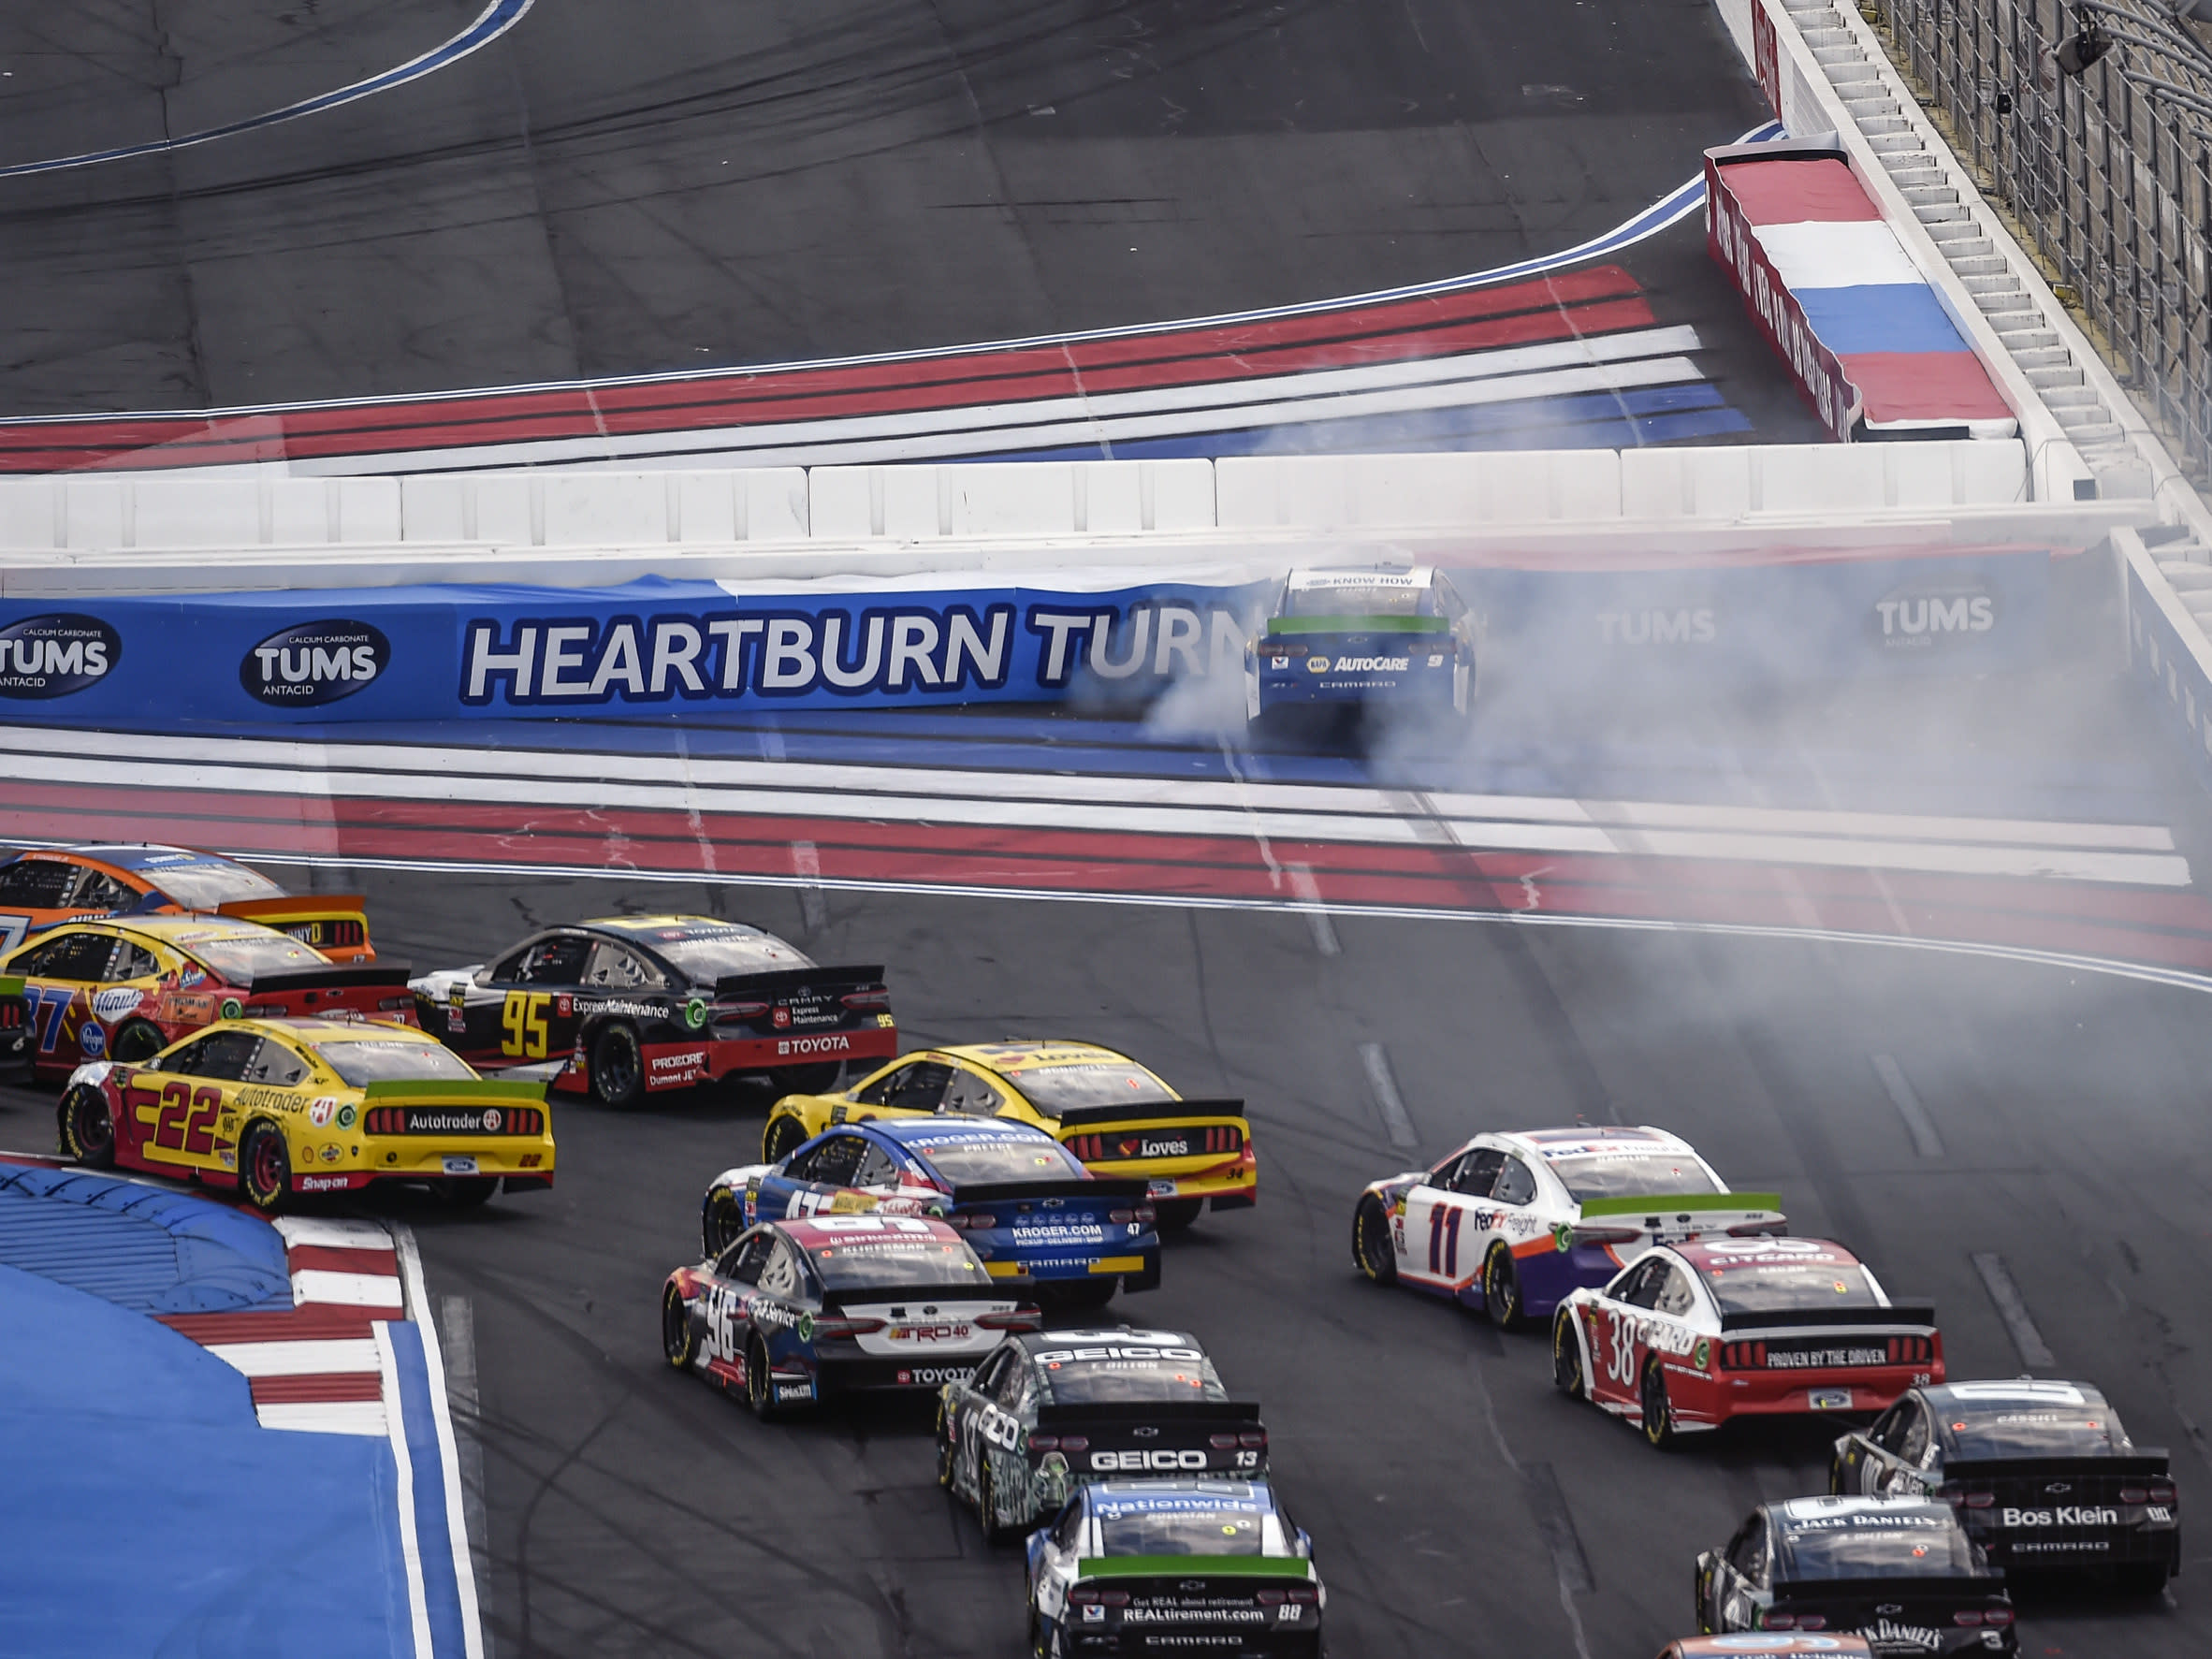 Chase Elliott (9) hits the wall in Turn 1 on a restart during a NASCAR Cup Series auto race at Charlotte Motor Speedway, Sunday, Sept. 29, 2019, in Concord, N.C. (AP Photo/Mike McCarn)